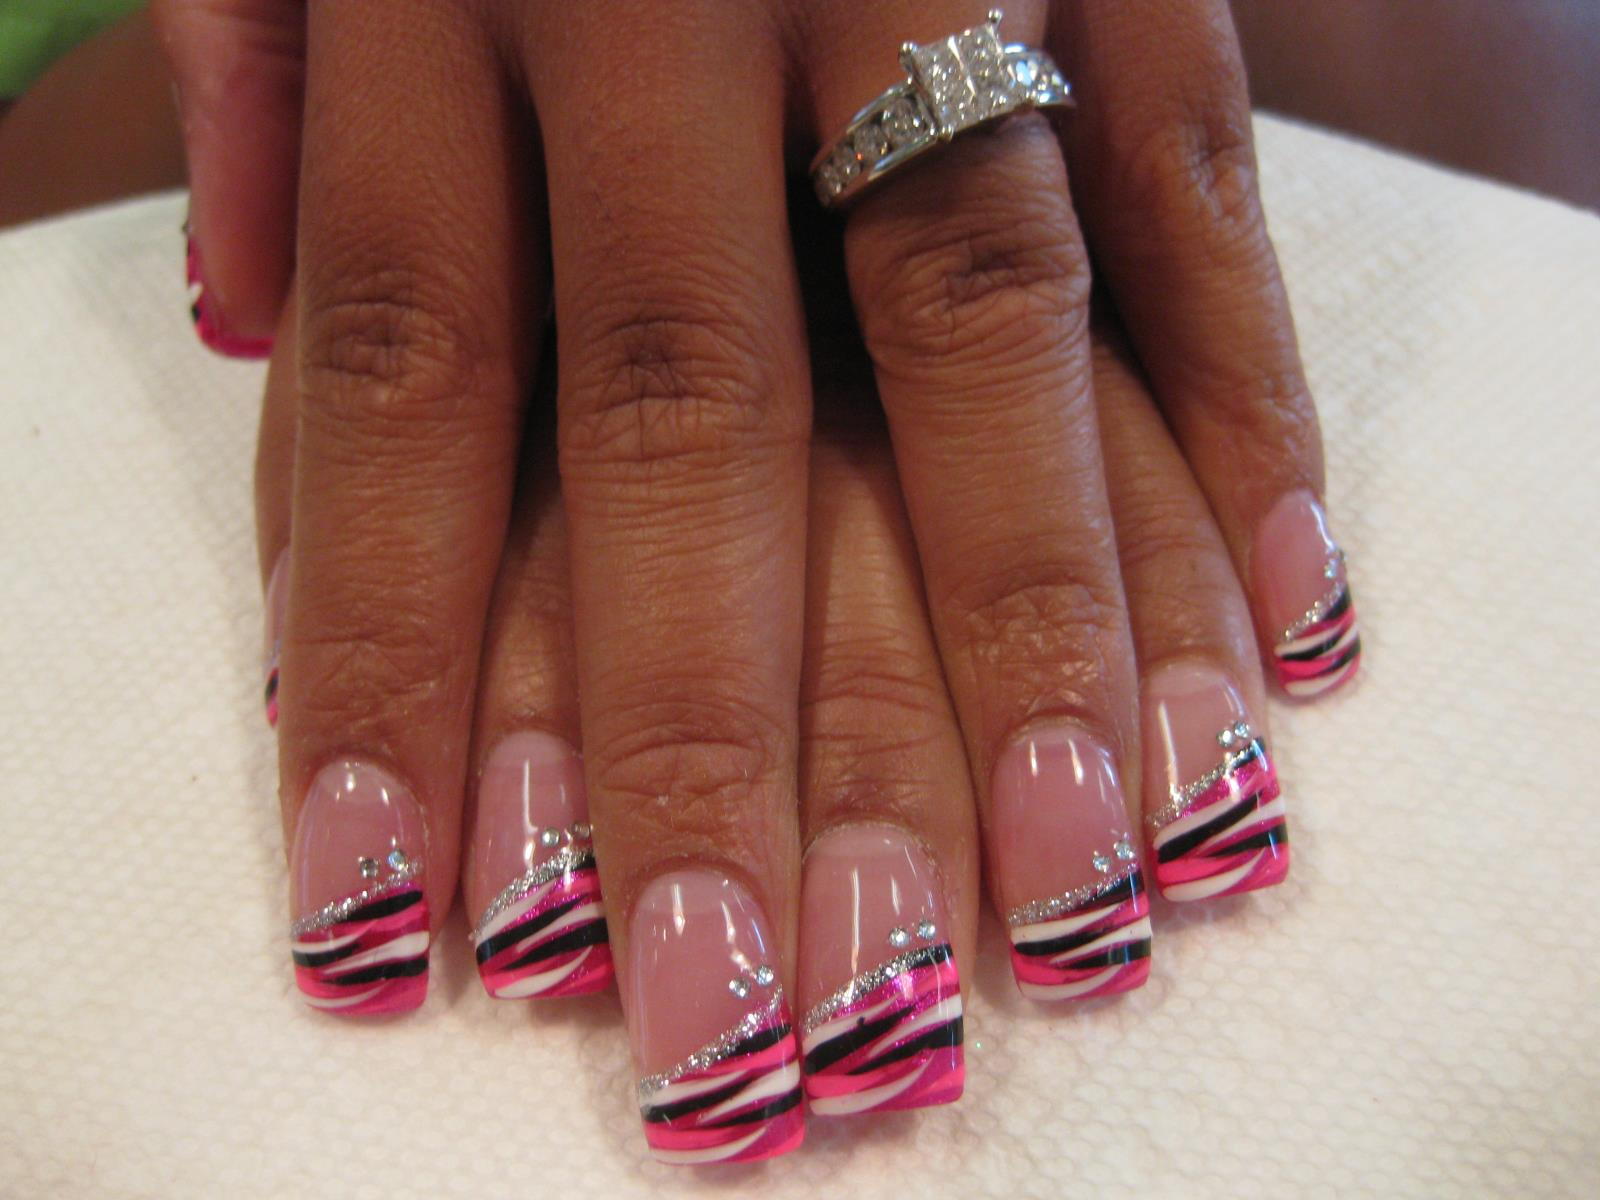 059g angled bright pinkpinkwhiteblack striped swirls topped with angled sparkling band tijuana swirl nail designs by top nails angled prinsesfo Images